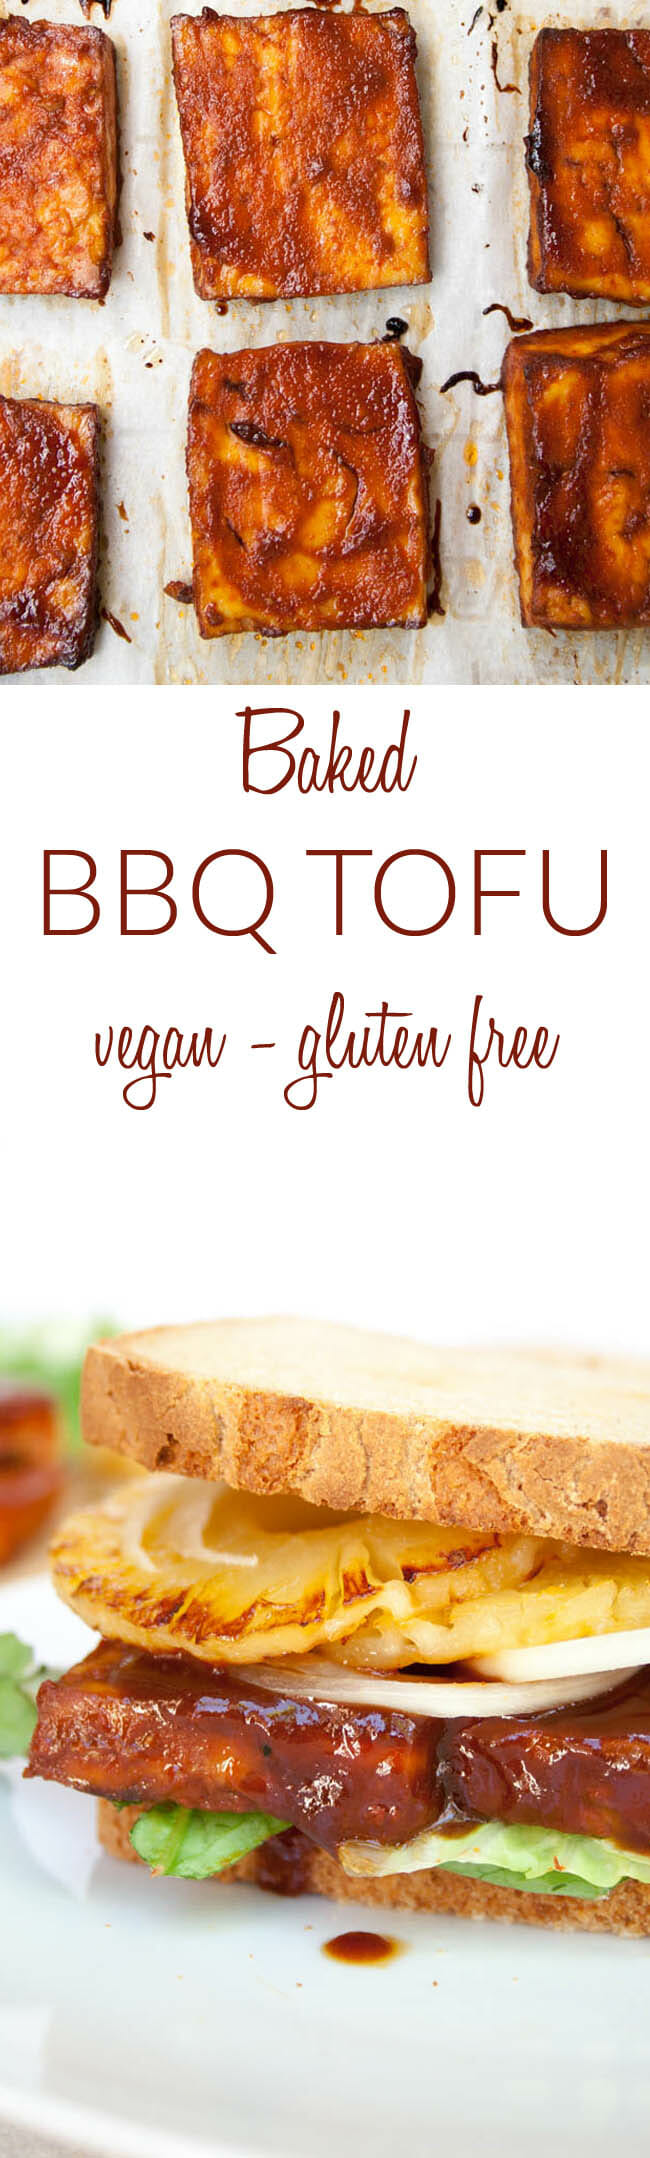 Baked BBQ Tofu collage photo with text.